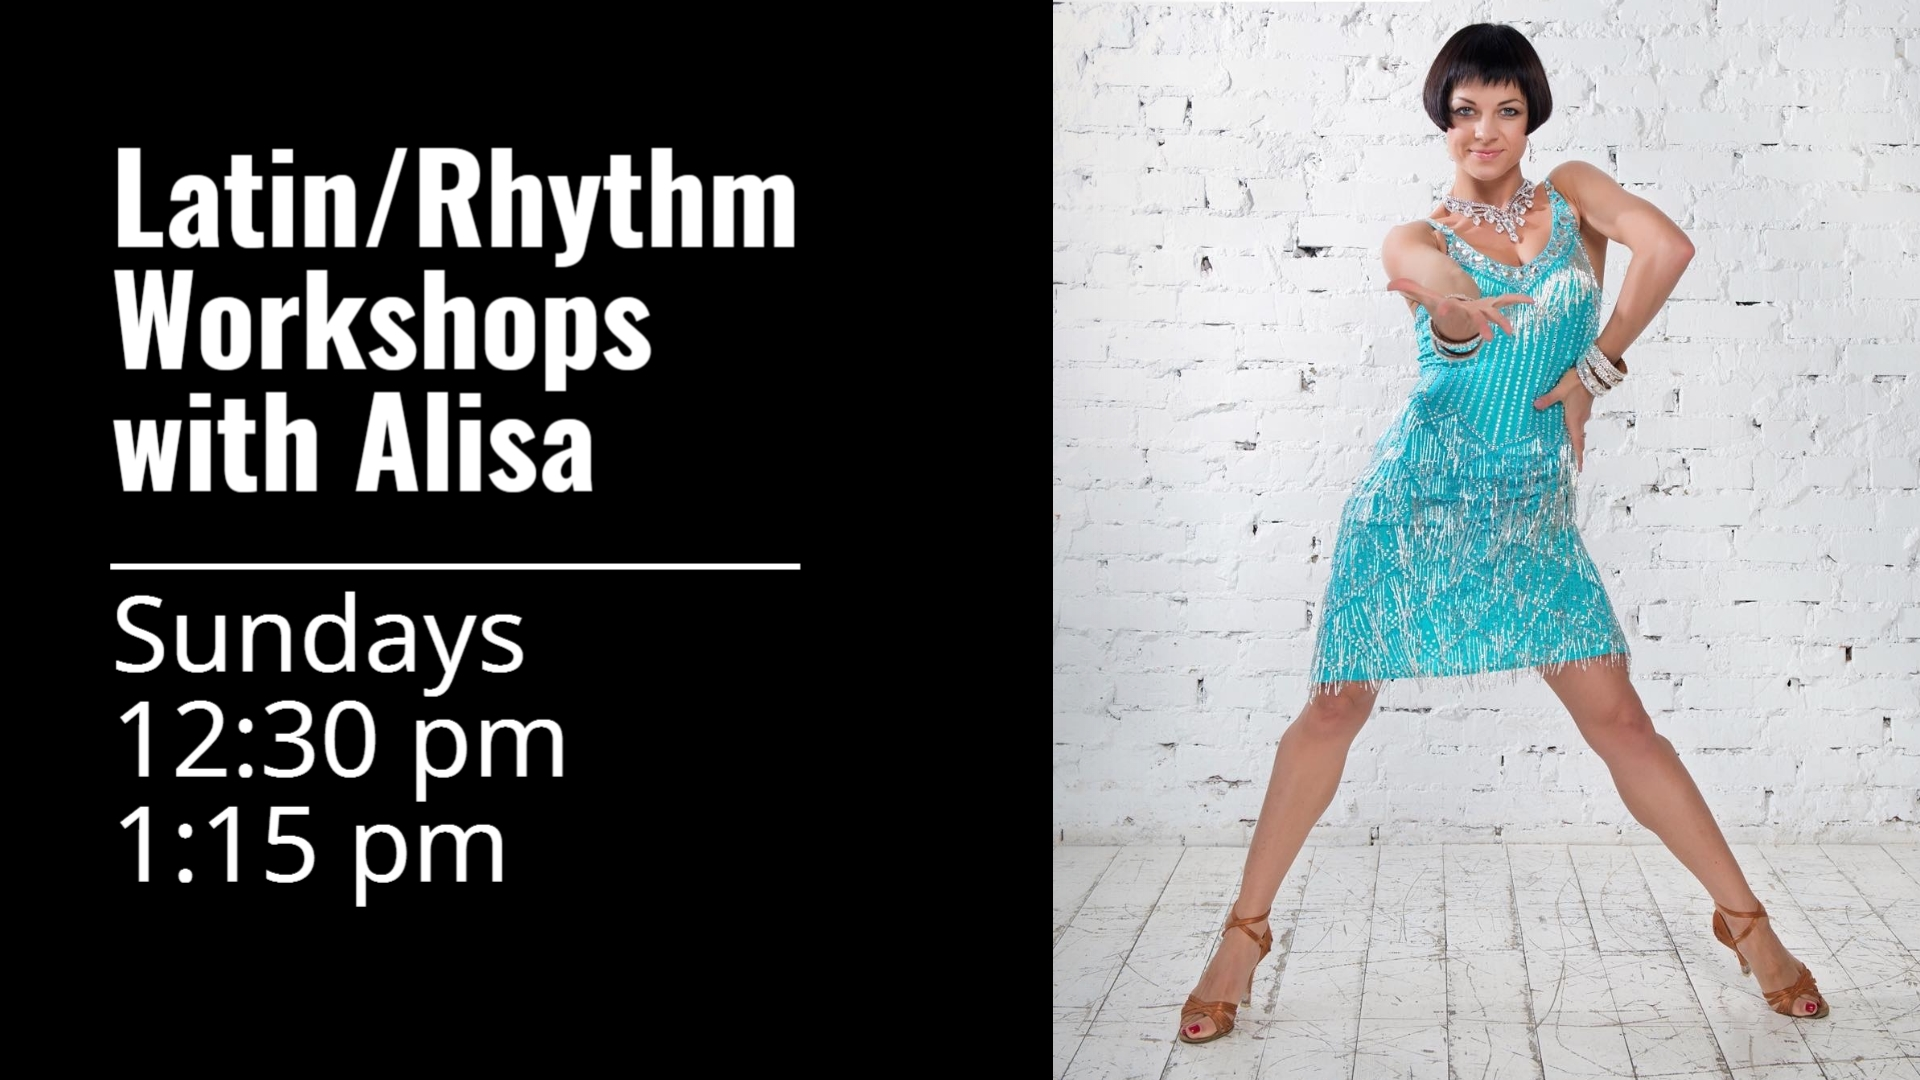 LATIN / RHYTHM WORKSHOPS - with Alisa Sadovnikova Most Sundays 12:30 - 2:00 pm12:30-1:15 pm Latin & Rhythm Styling for Men & Ladies1:15-2:00 pm Latin Bronze Basics & Drills$20 for one class / $30 for two classesLearn more about Alisa Sadovnikova